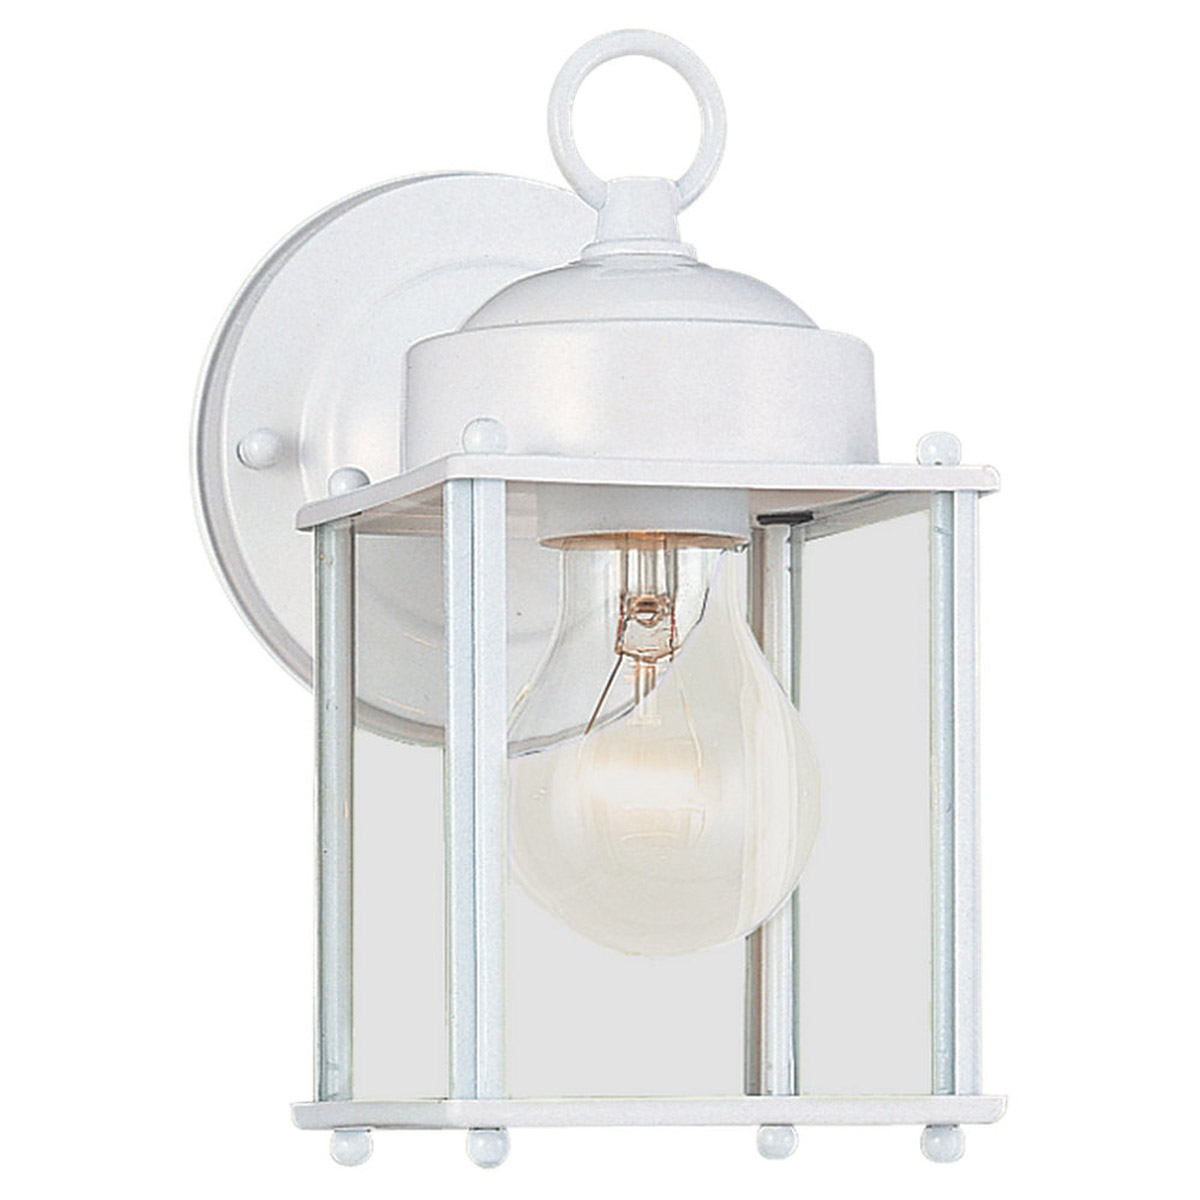 Sea Gull Lighting New Castle 1 Light Outdoor Wall Lantern in White 8592-15